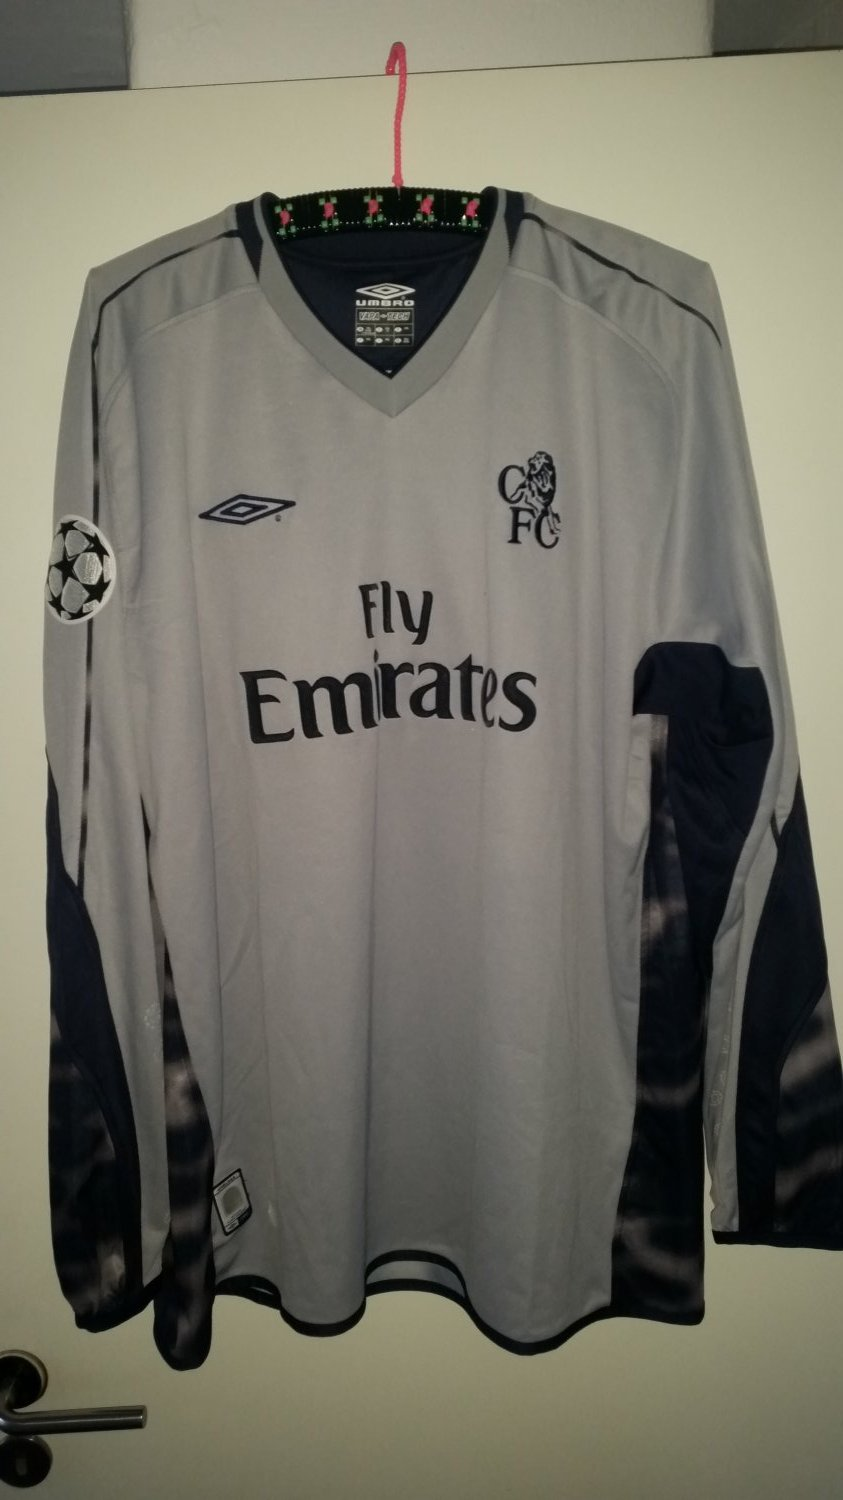 68b987d09 Chelsea Goalkeeper Maillot de foot 2003 - 2005. Sponsored by Emirates